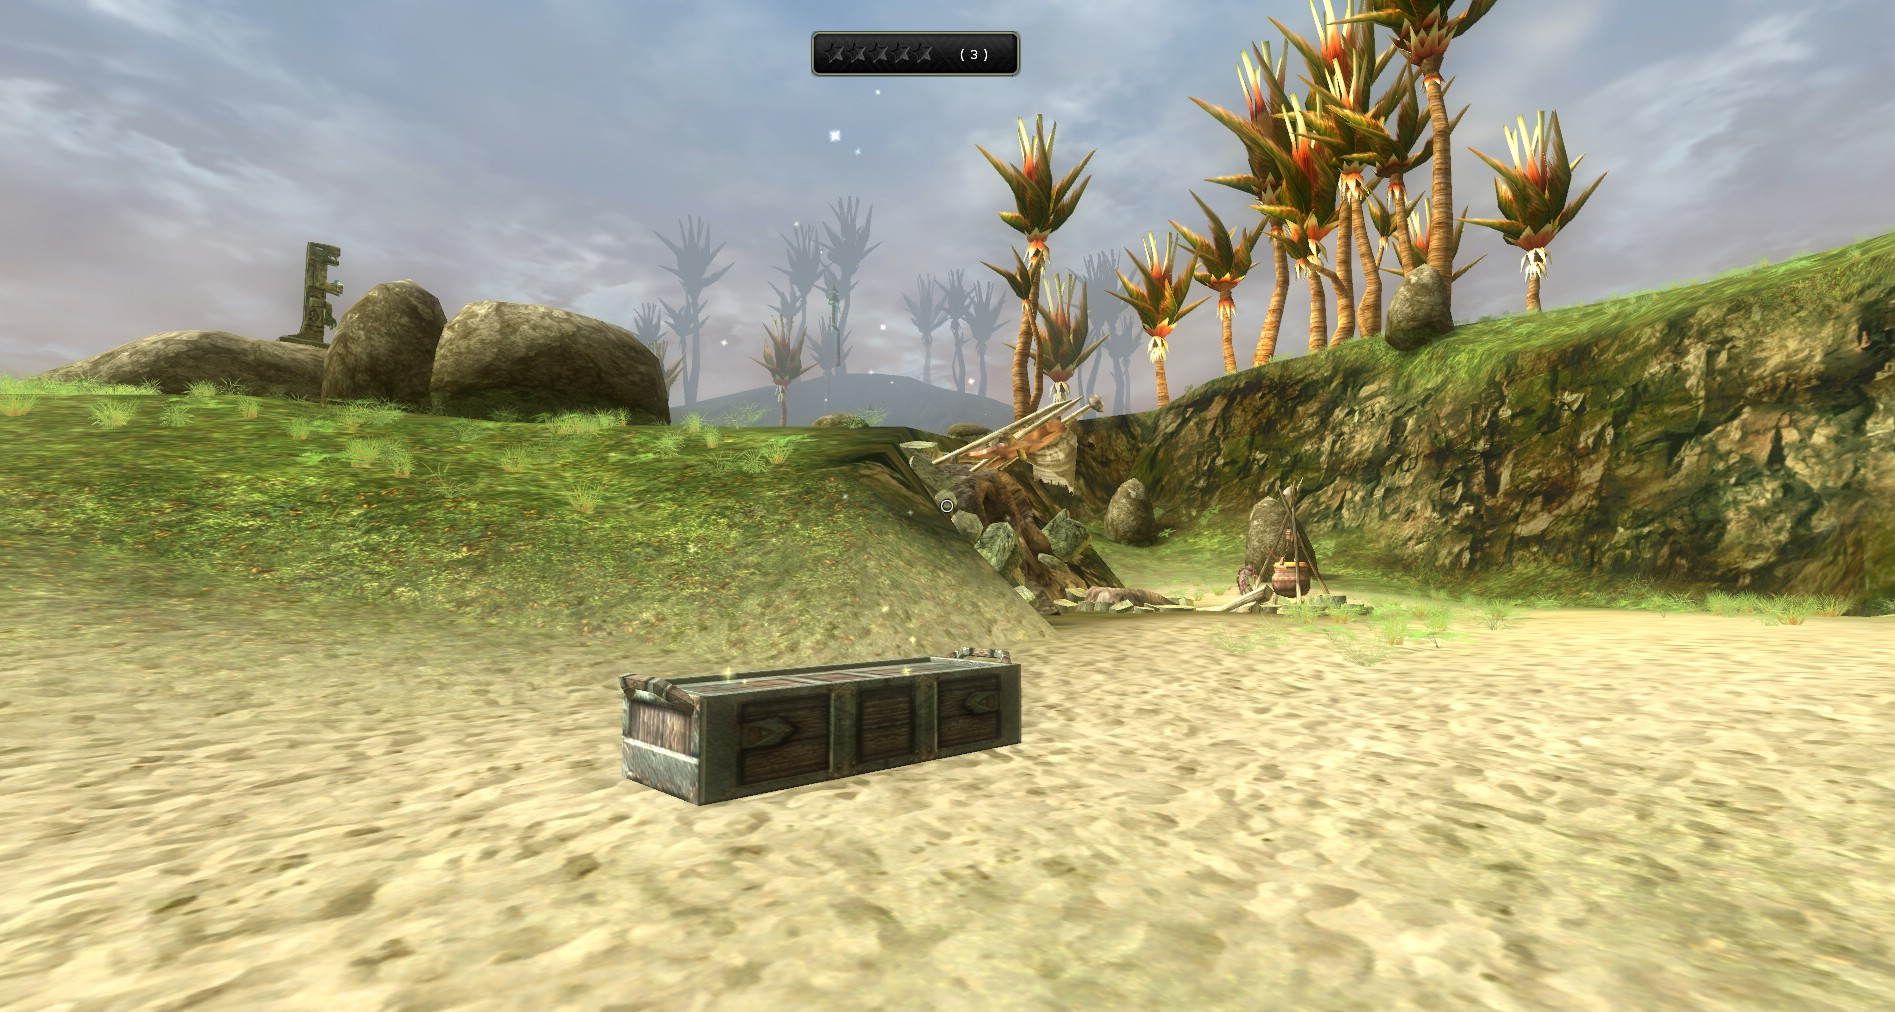 u12-kobold-island-supply-crate